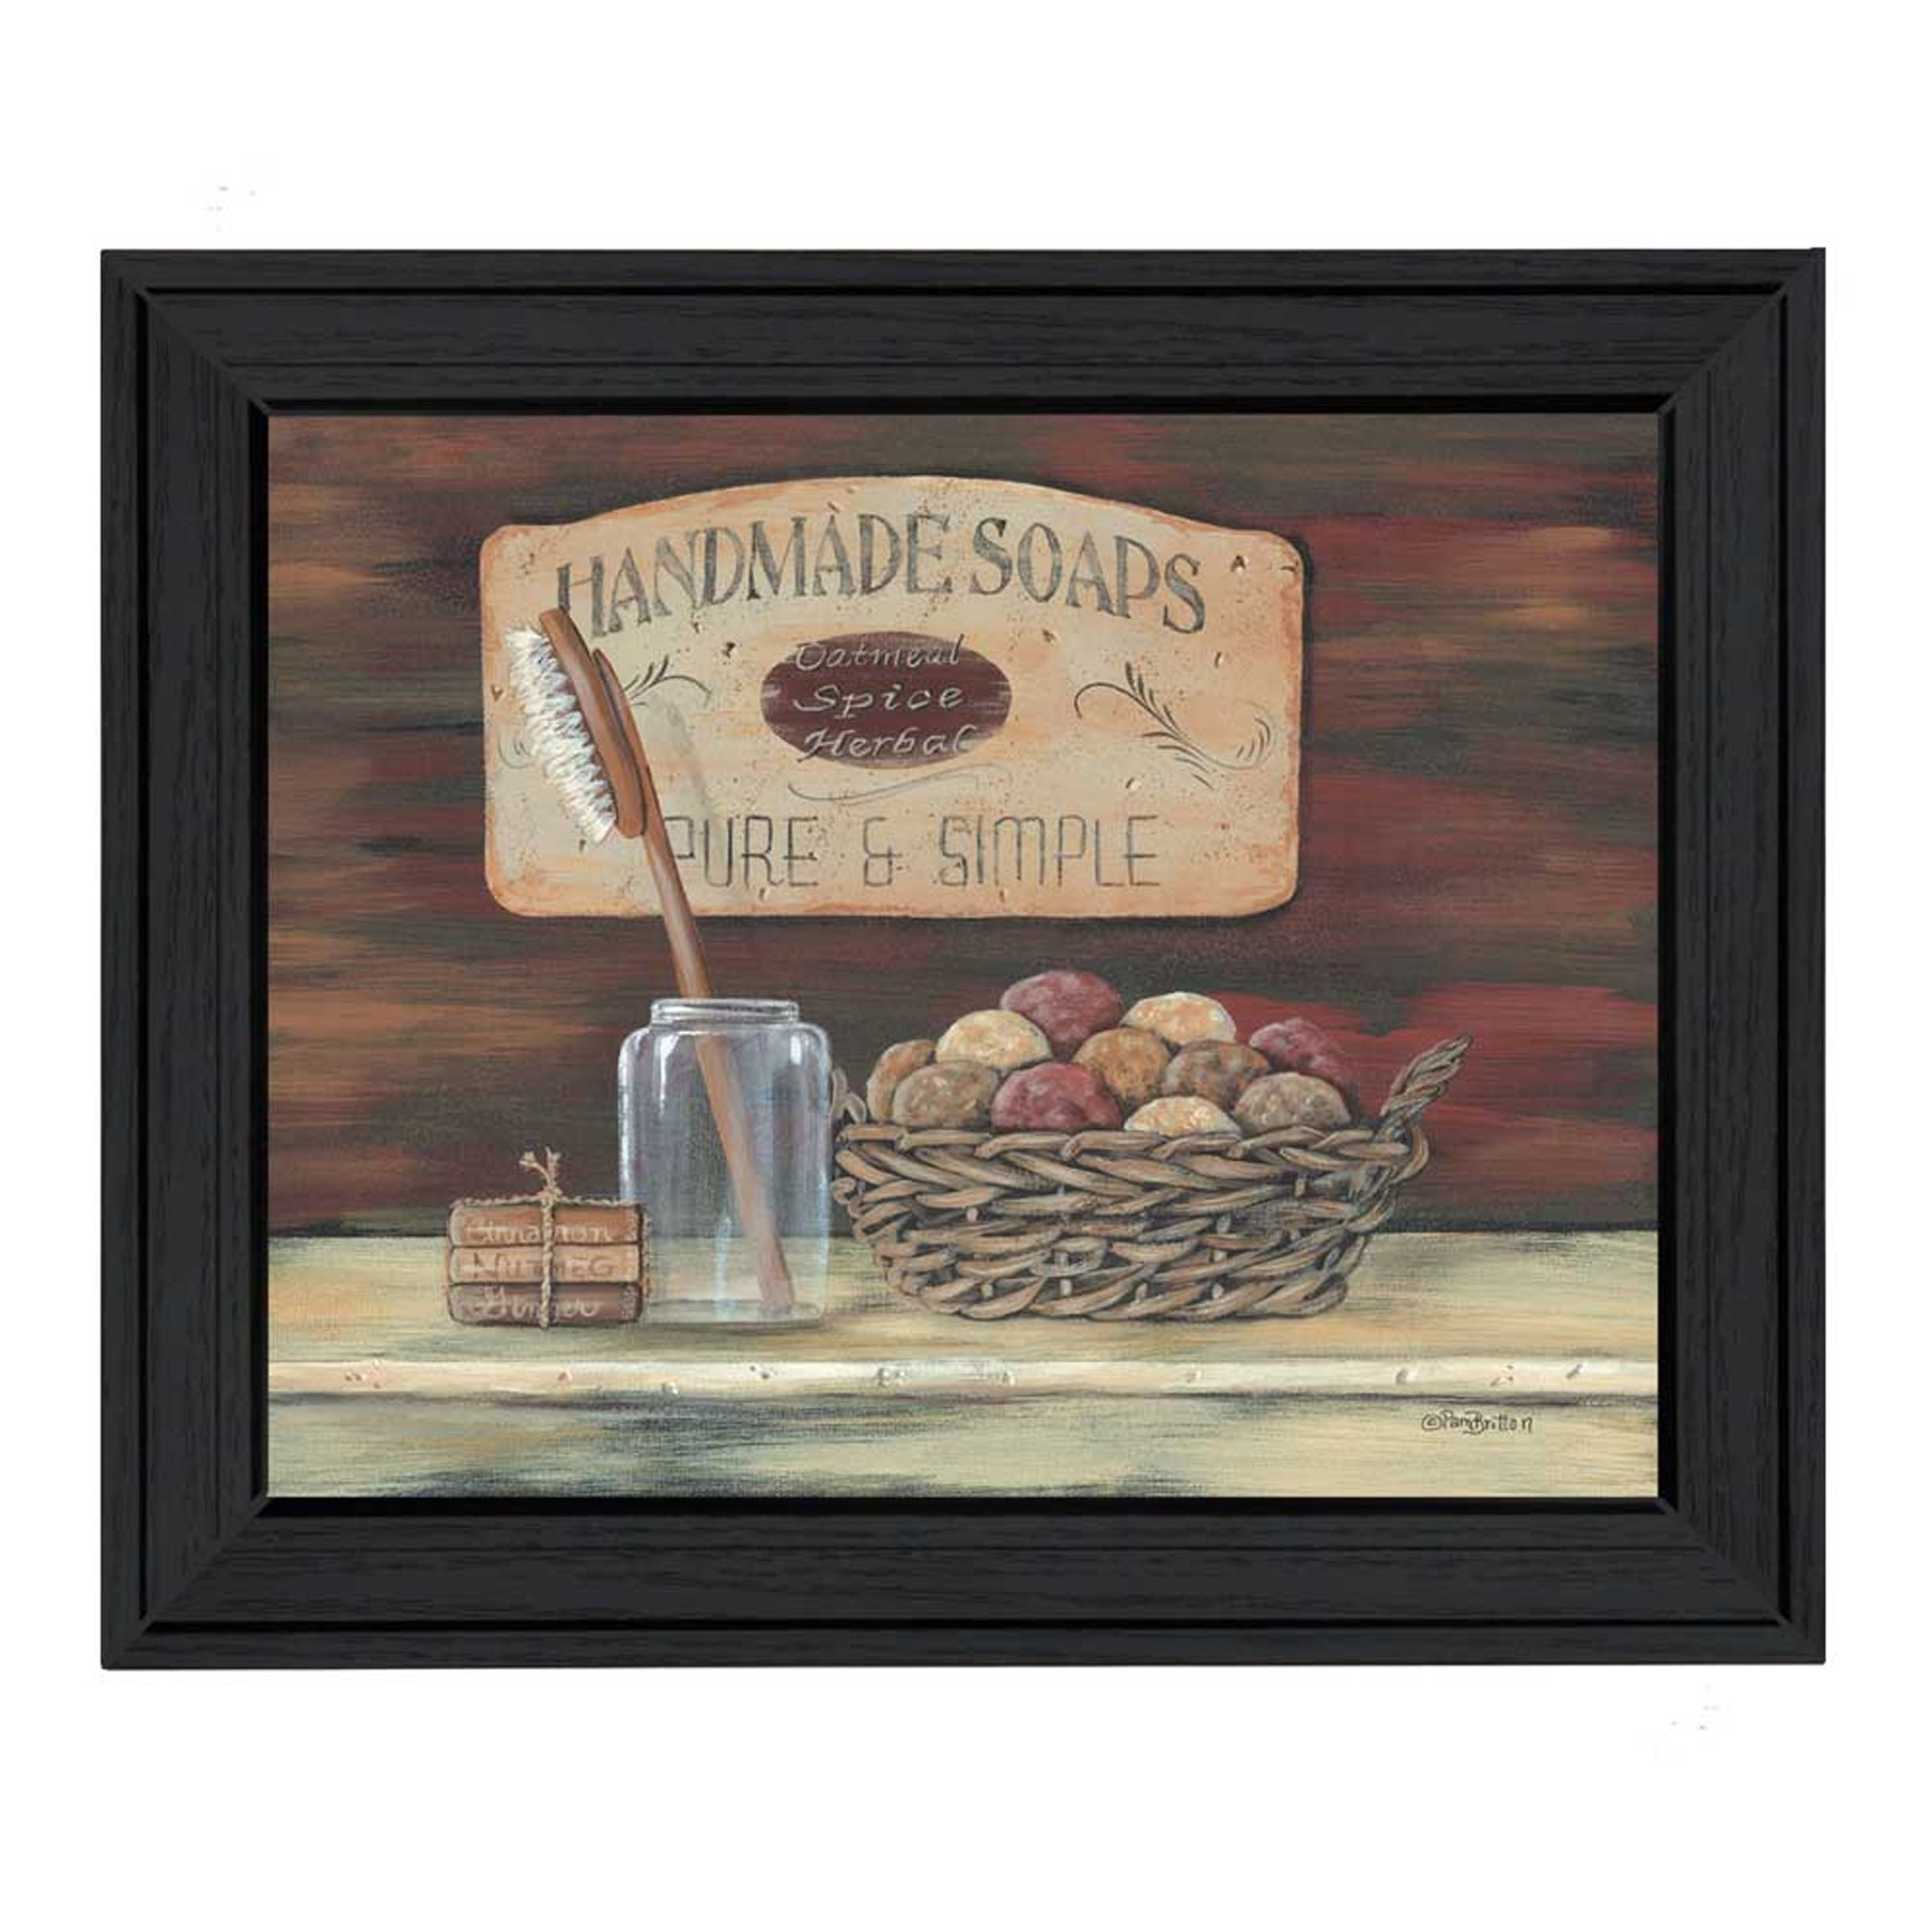 "Trendy Decor 4U ""Handmade Soaps"" By Pam Britton, Printed Wall Art, Ready To Hang Framed Poster, Black Frame"